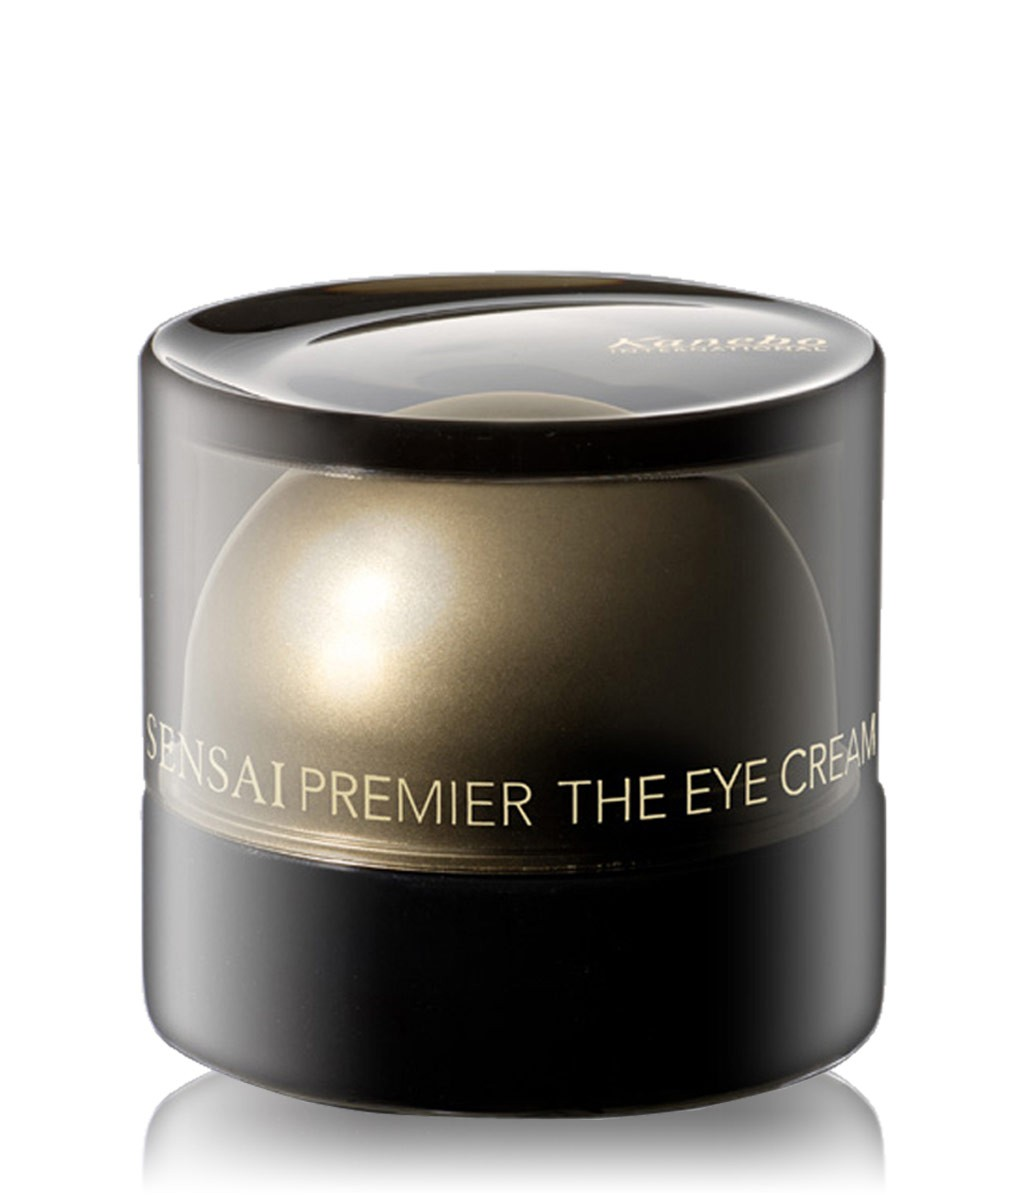 Kanebo Sensai Premier The Eye Cream 15ml